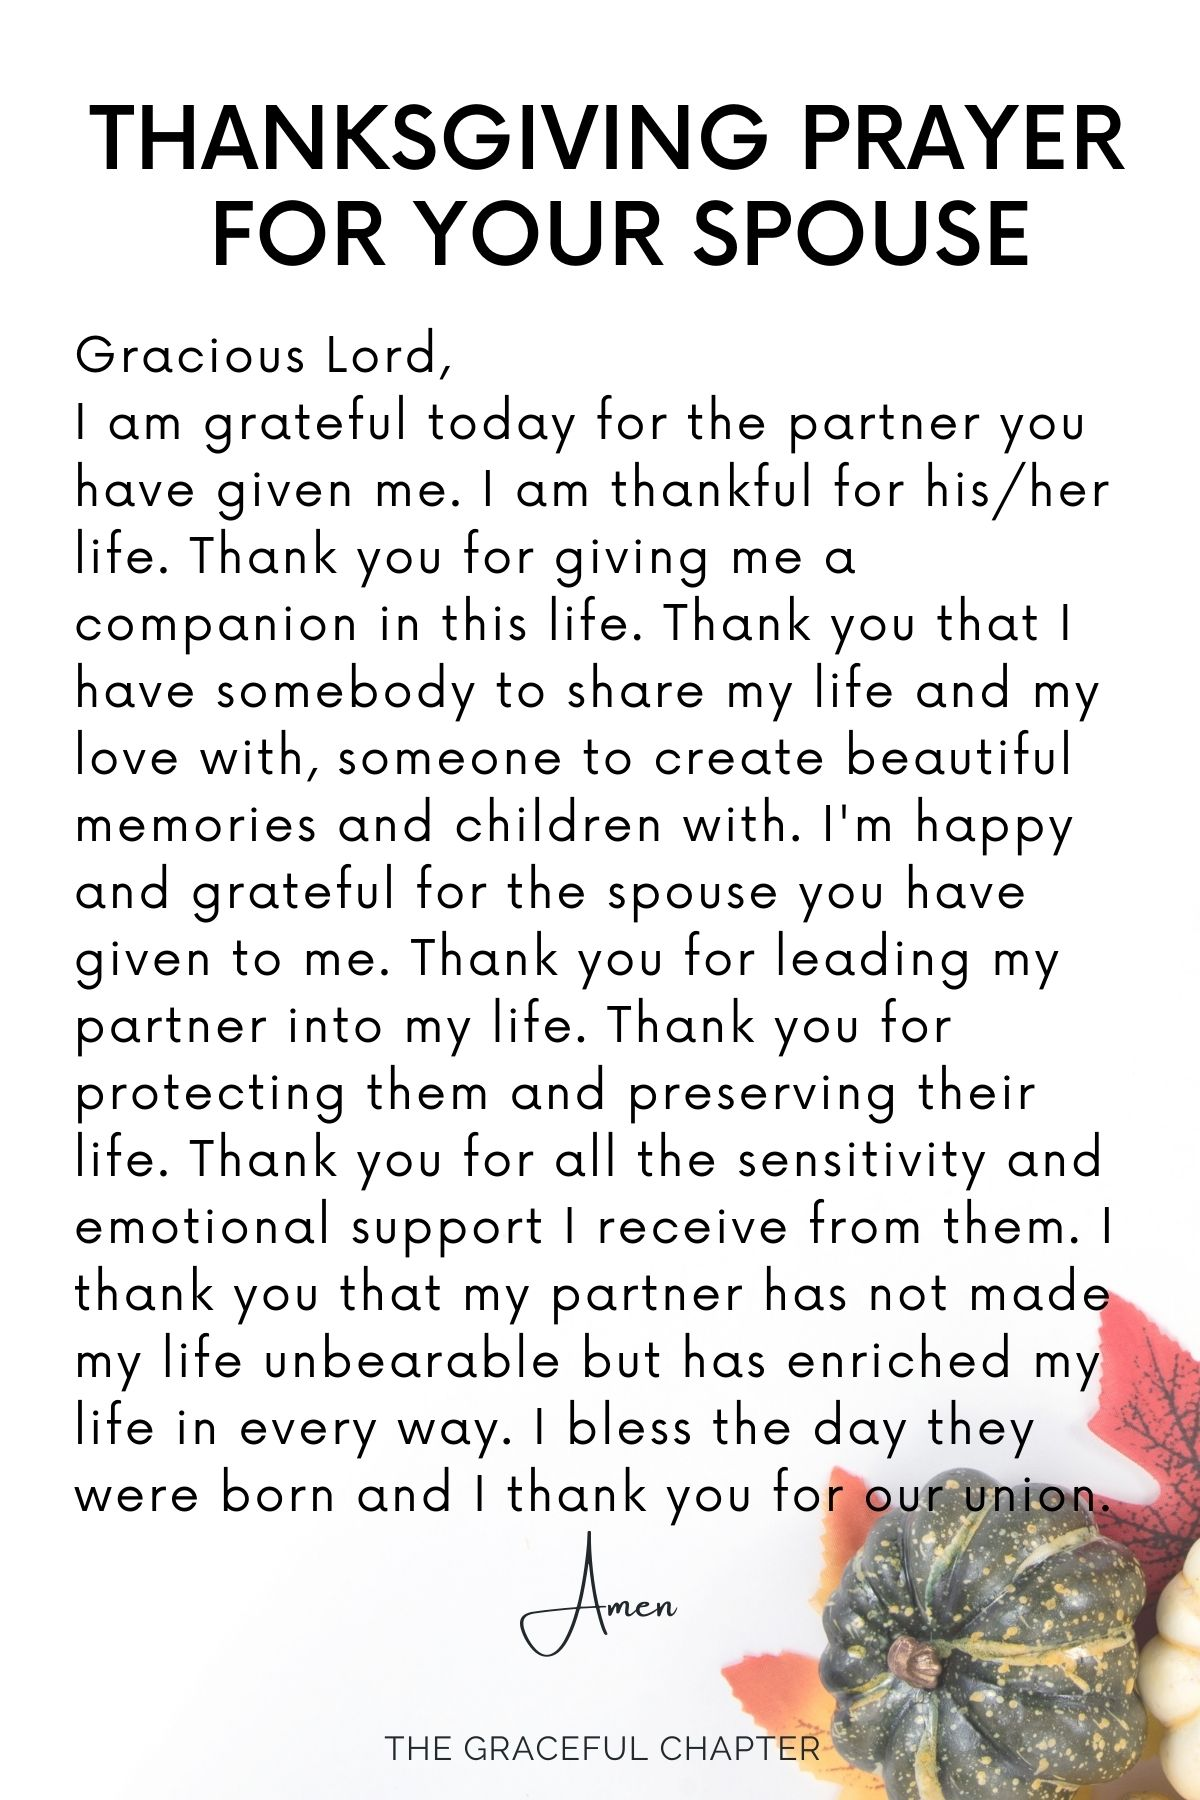 Thanksgiving prayer for your spouse